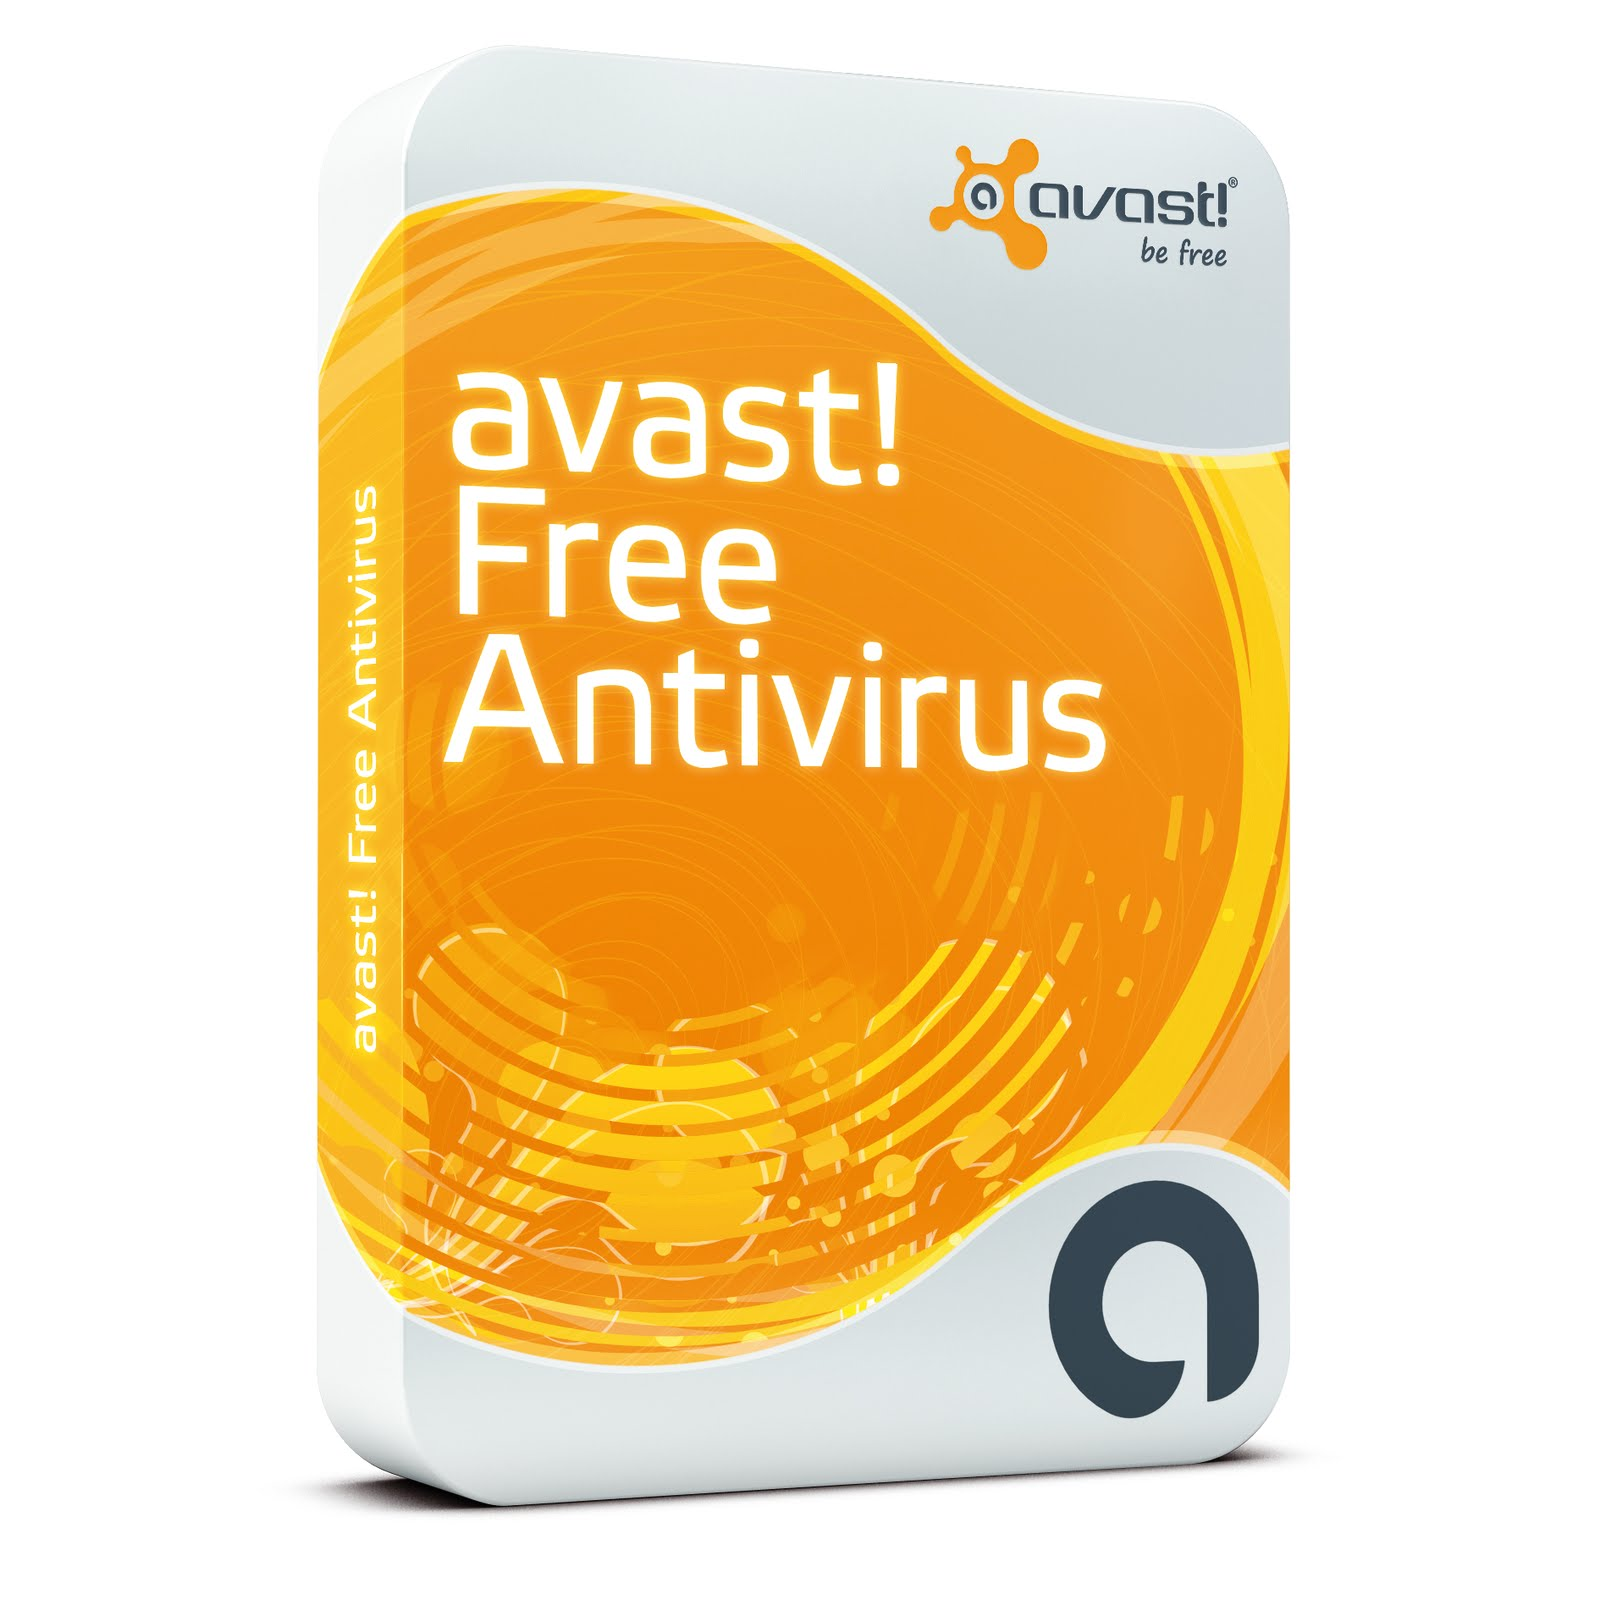 Avast free antivirus download free - 19